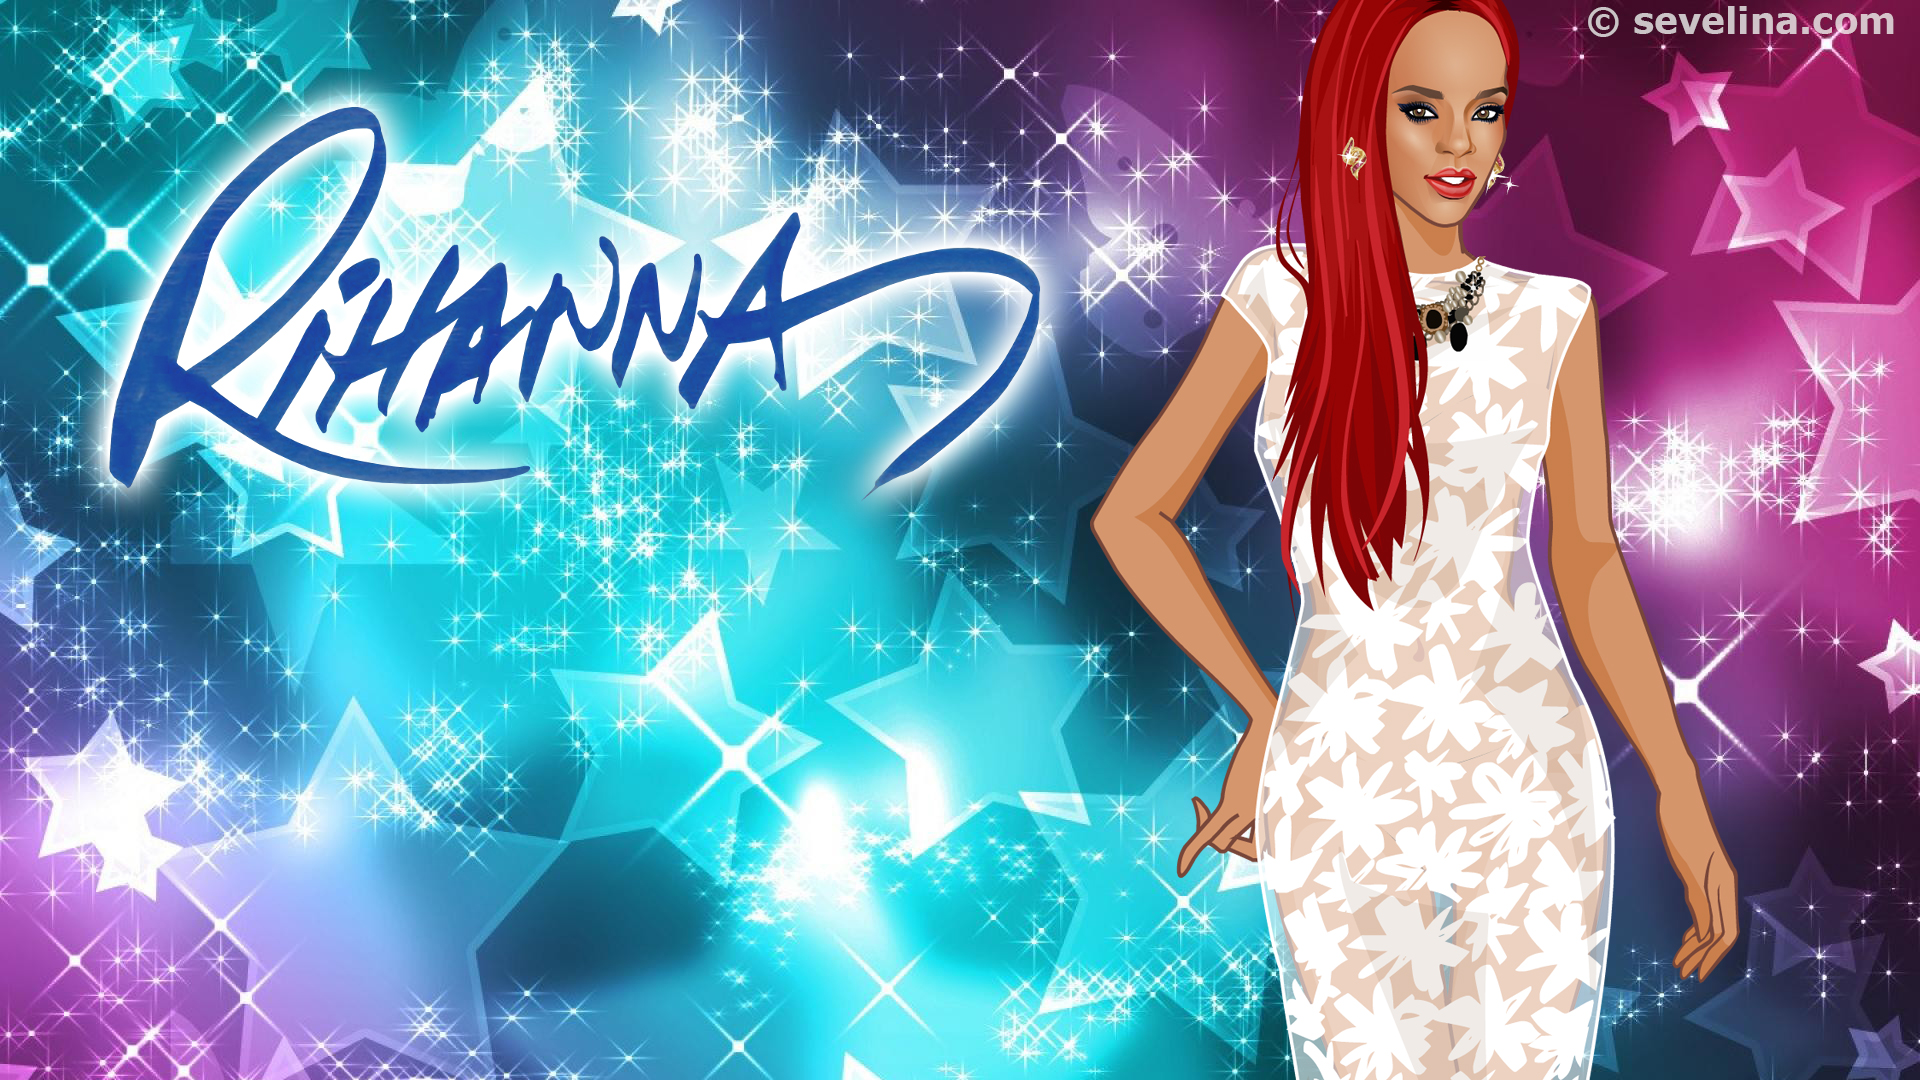 rihanna wallpapers 2014 Full HD SEVELINA